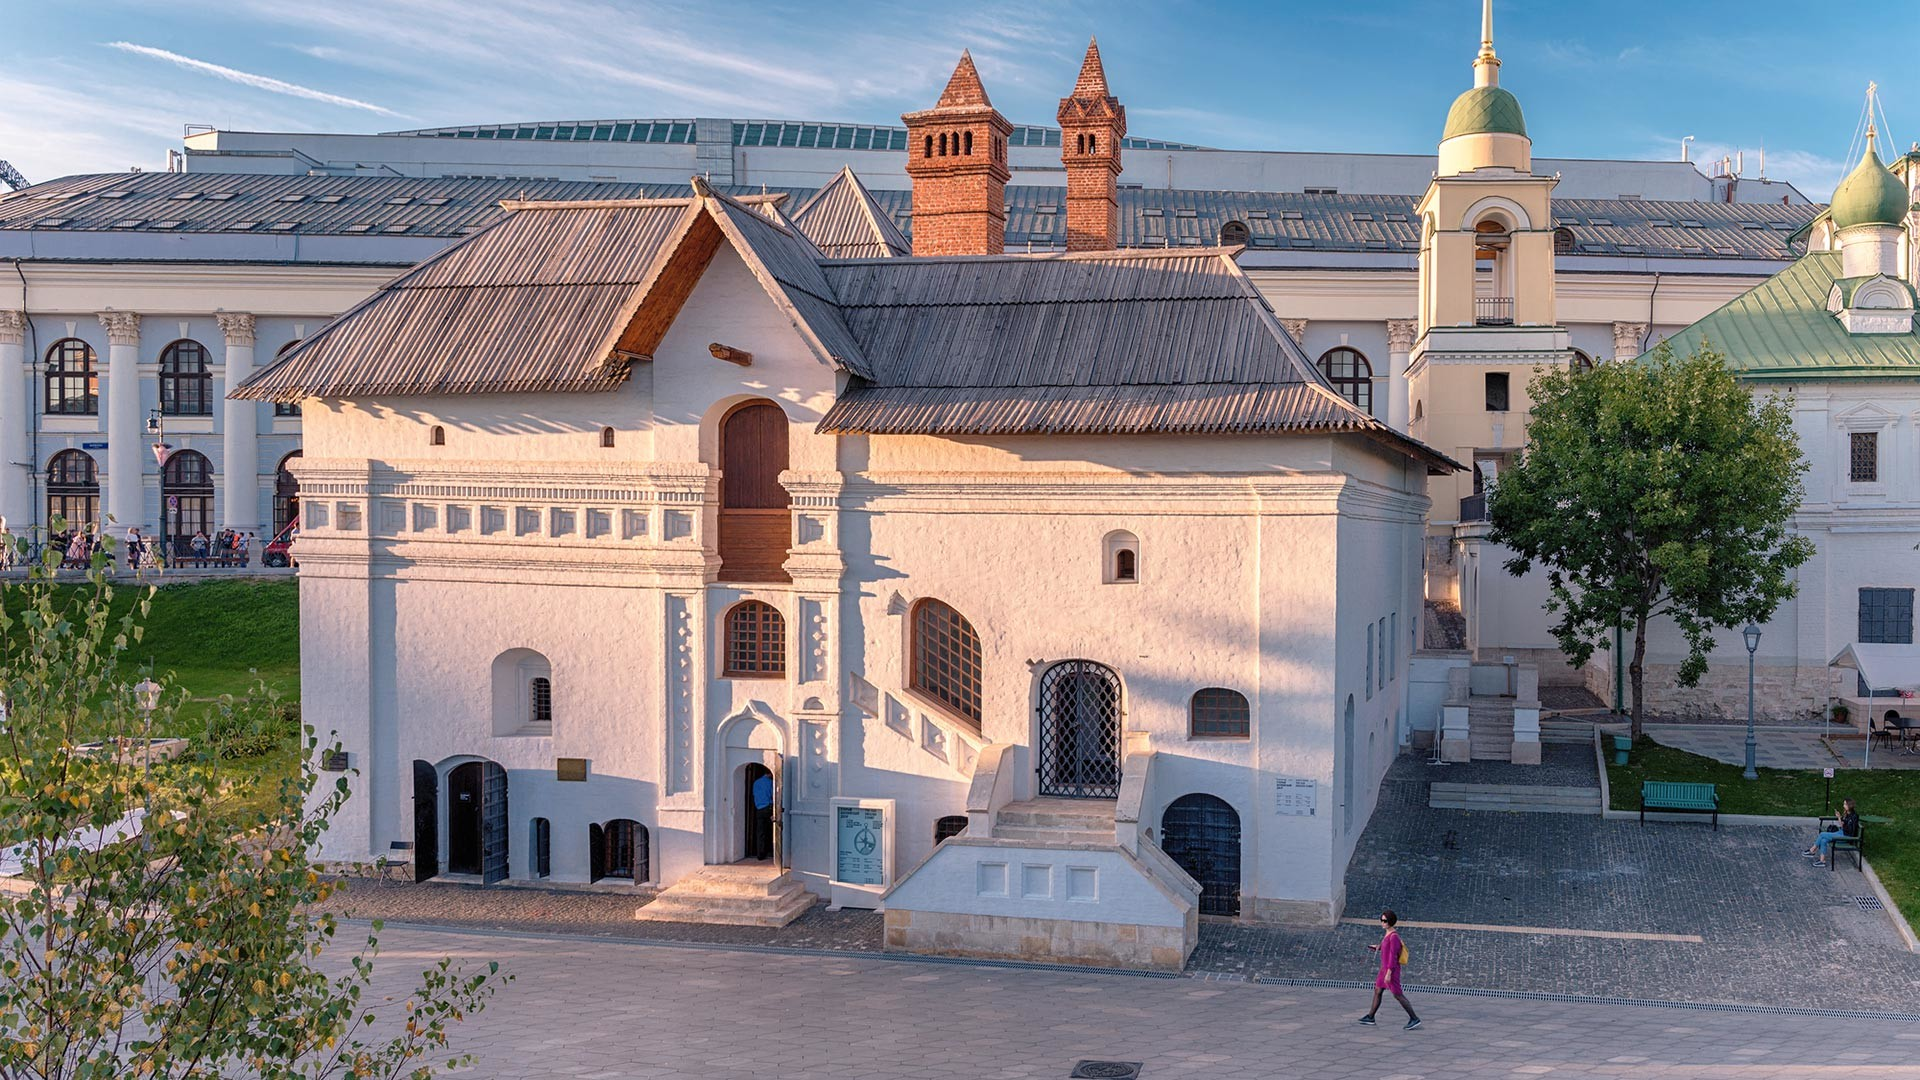 The building of the 'Old English Yard' as seen from Zaryadye park.